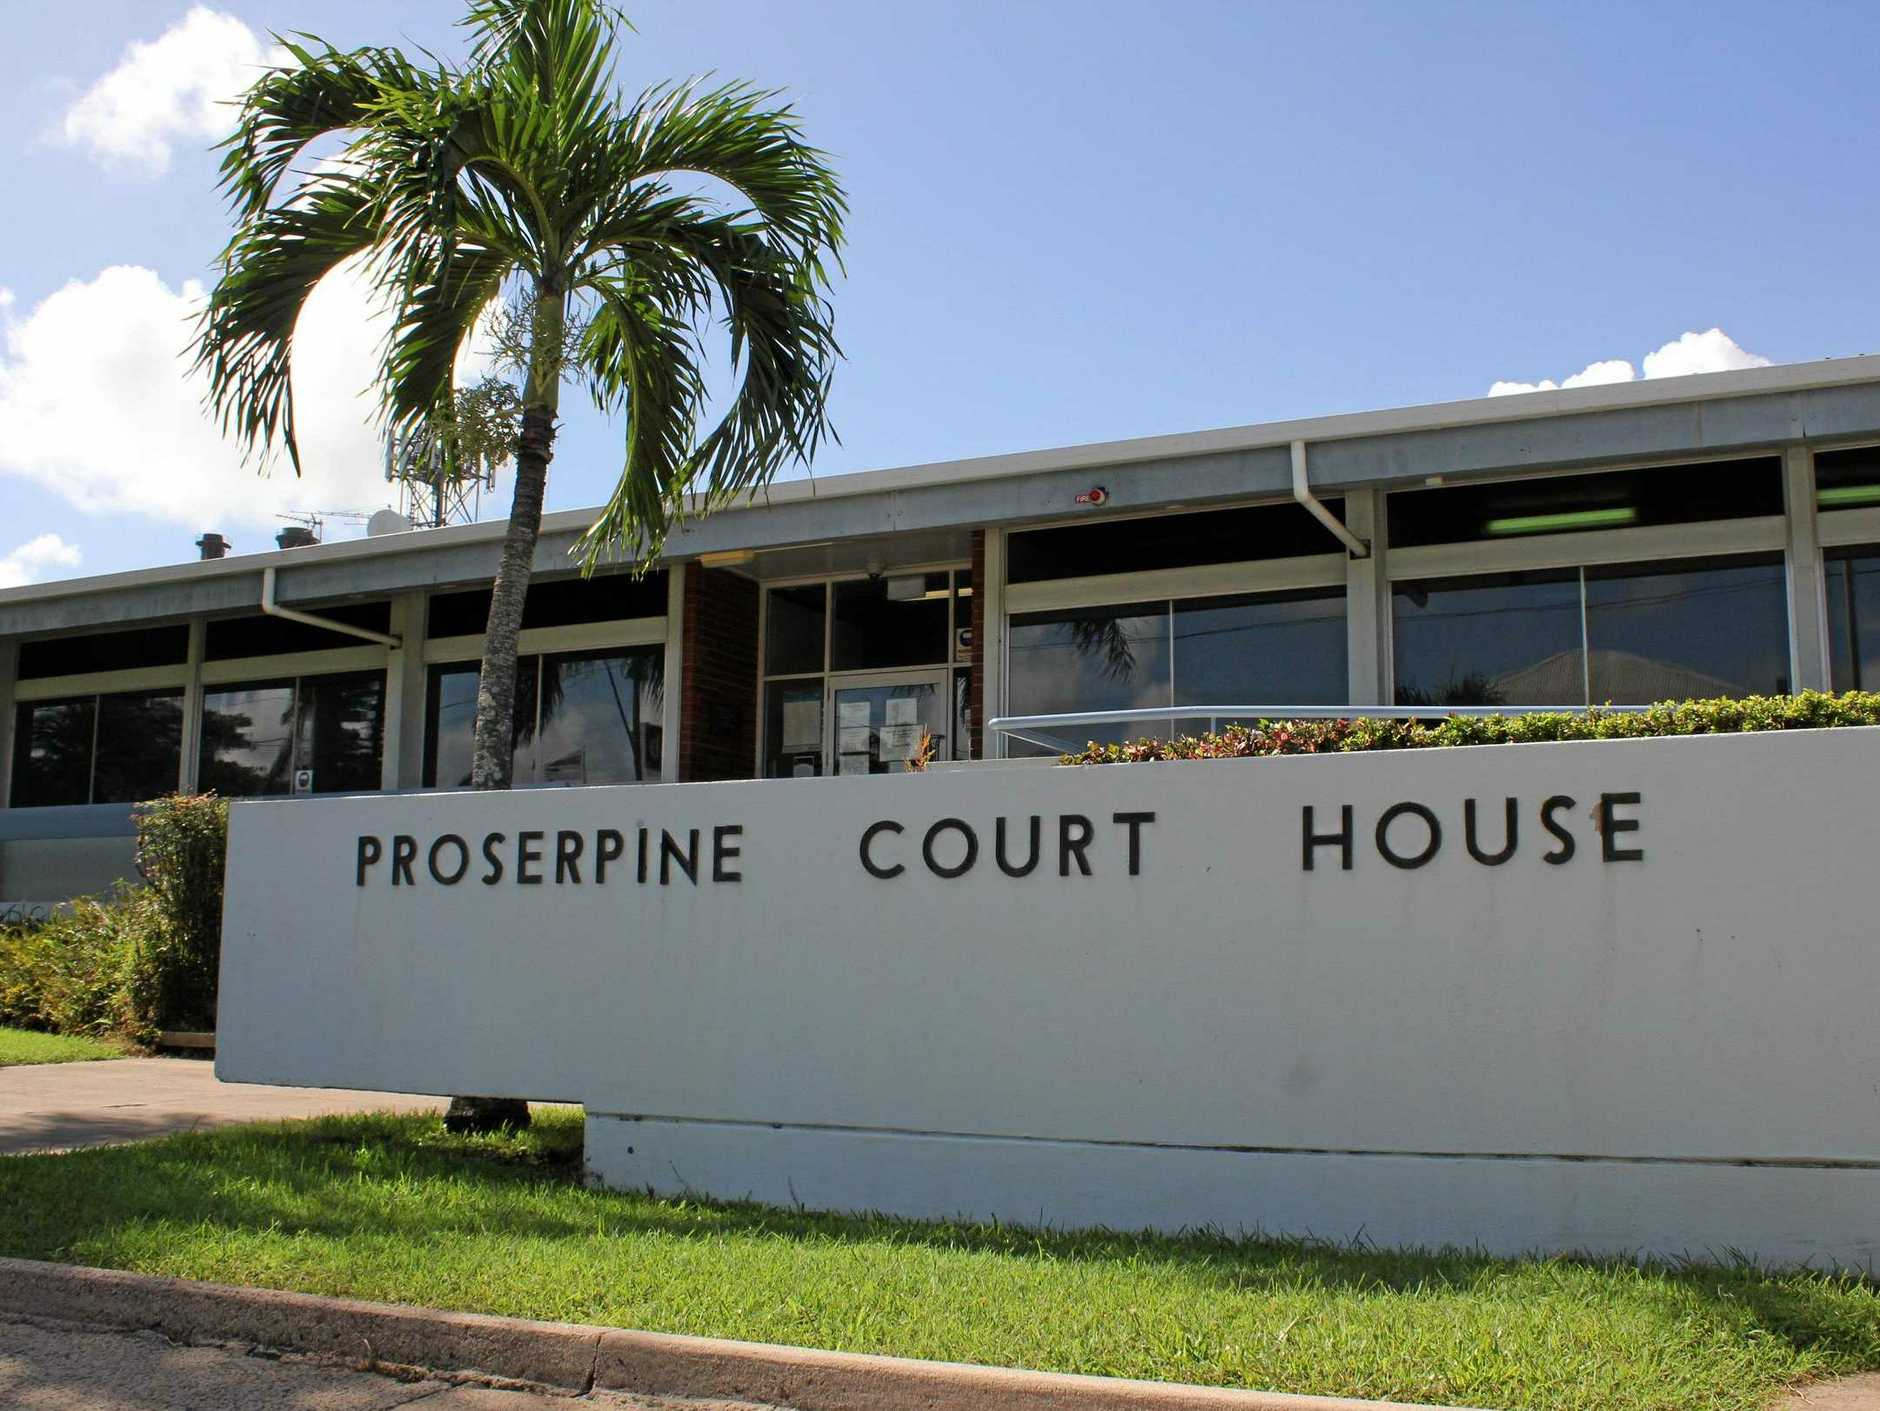 Strathdickie's Daniel Micheal Redaud had his intellect questioned when he pleaded guilty in Proserpine Magistrates Court to driving with drugs in his saliva.